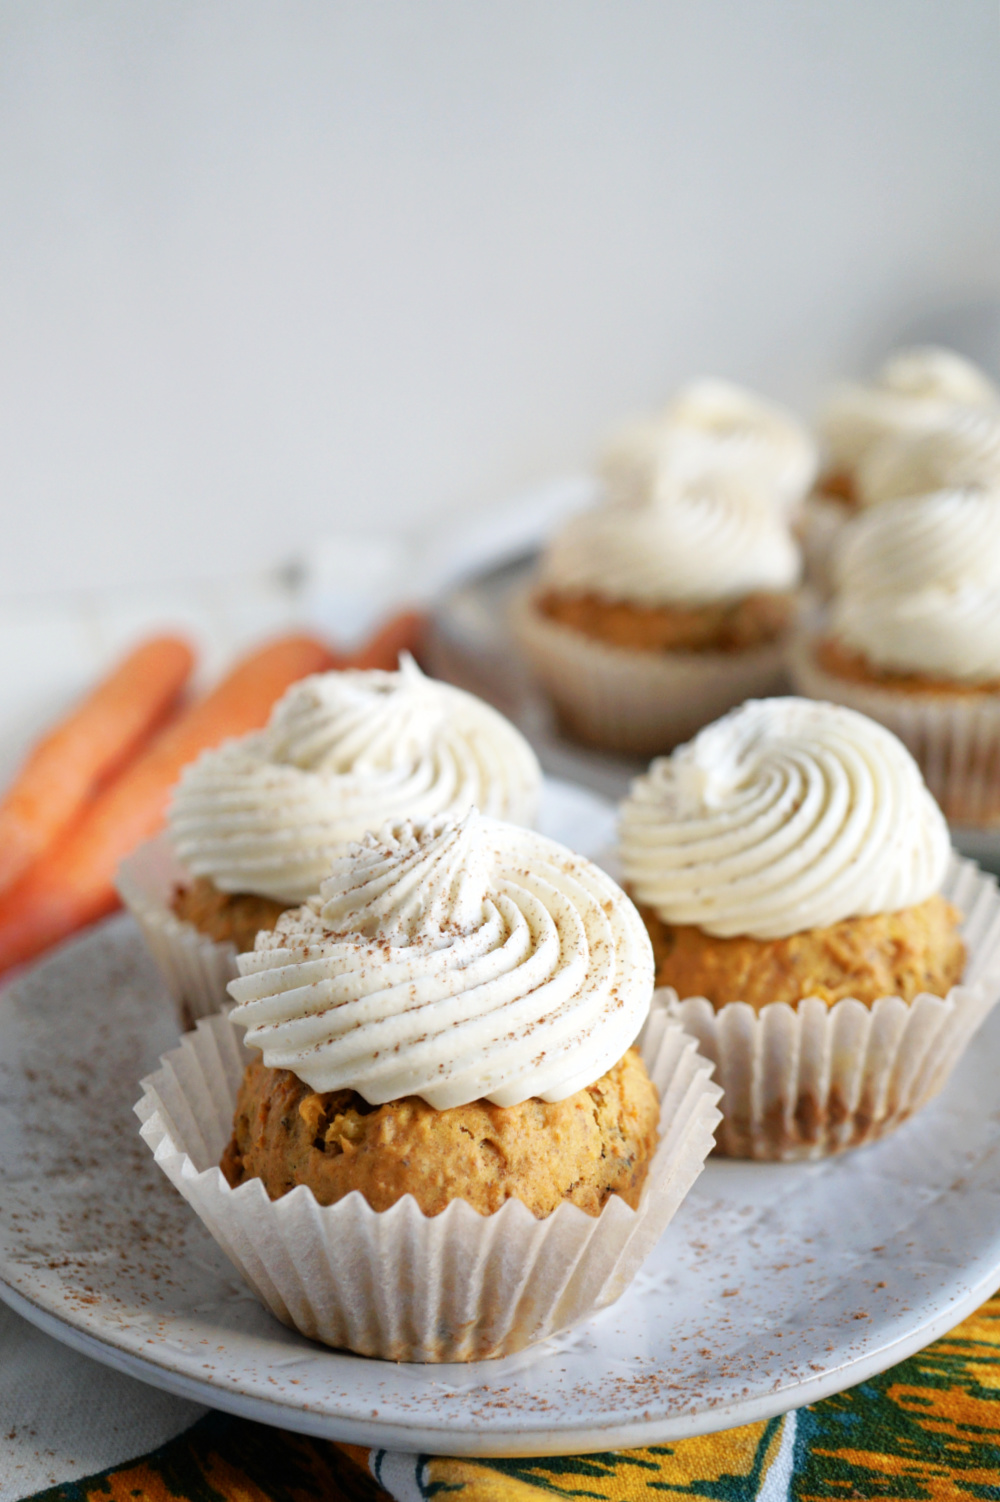 carrot cake cupcakes with white frosting on top